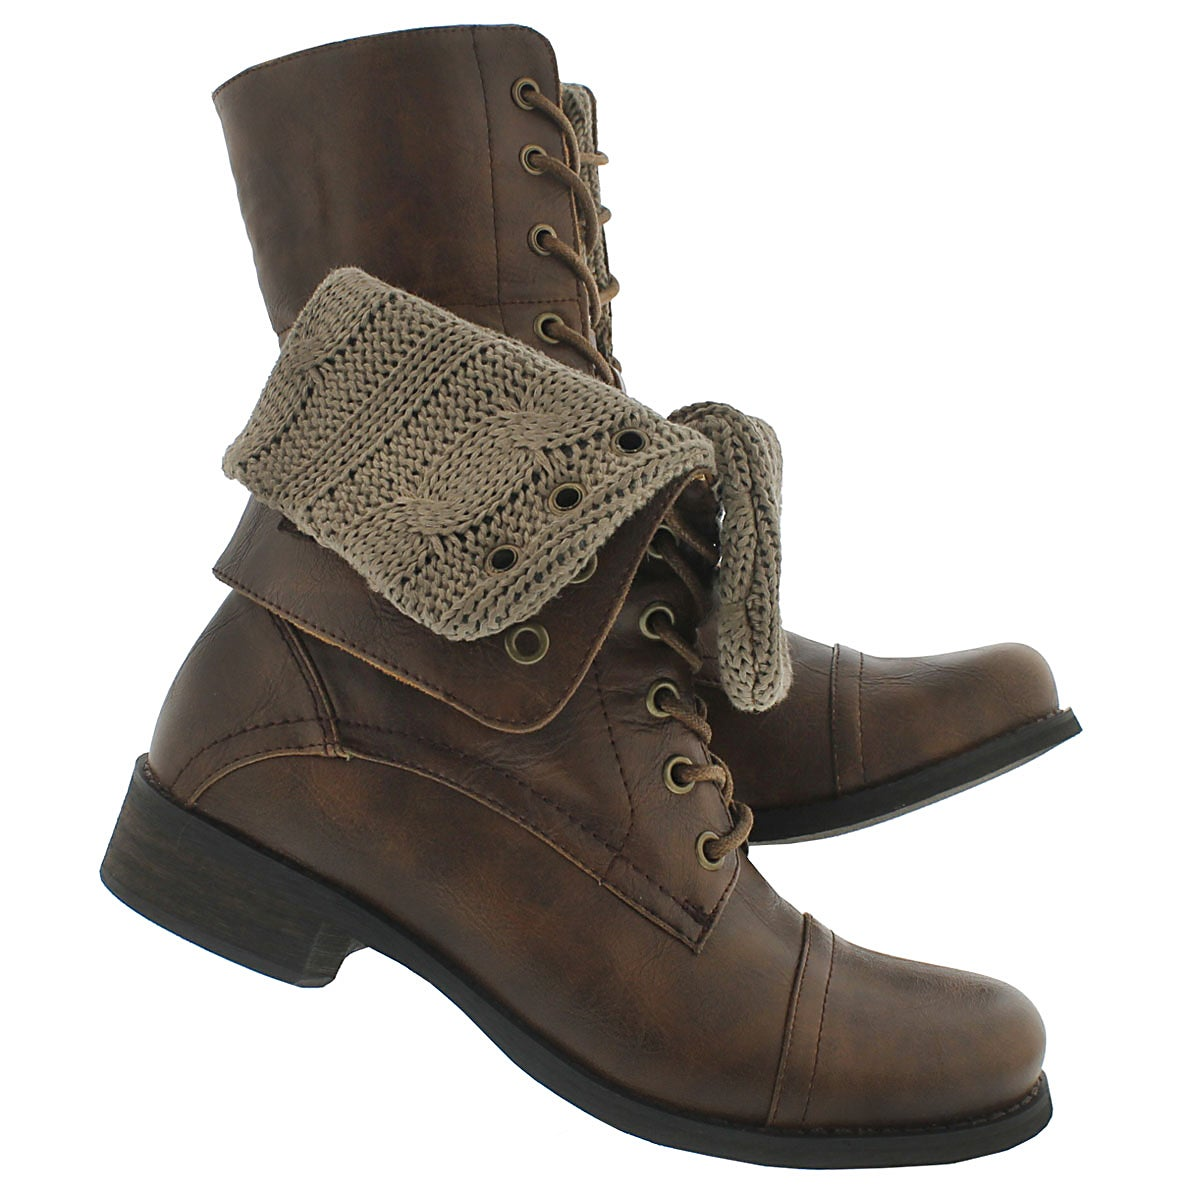 SoftMoc Women's BEV brown lace up fold down combat boots